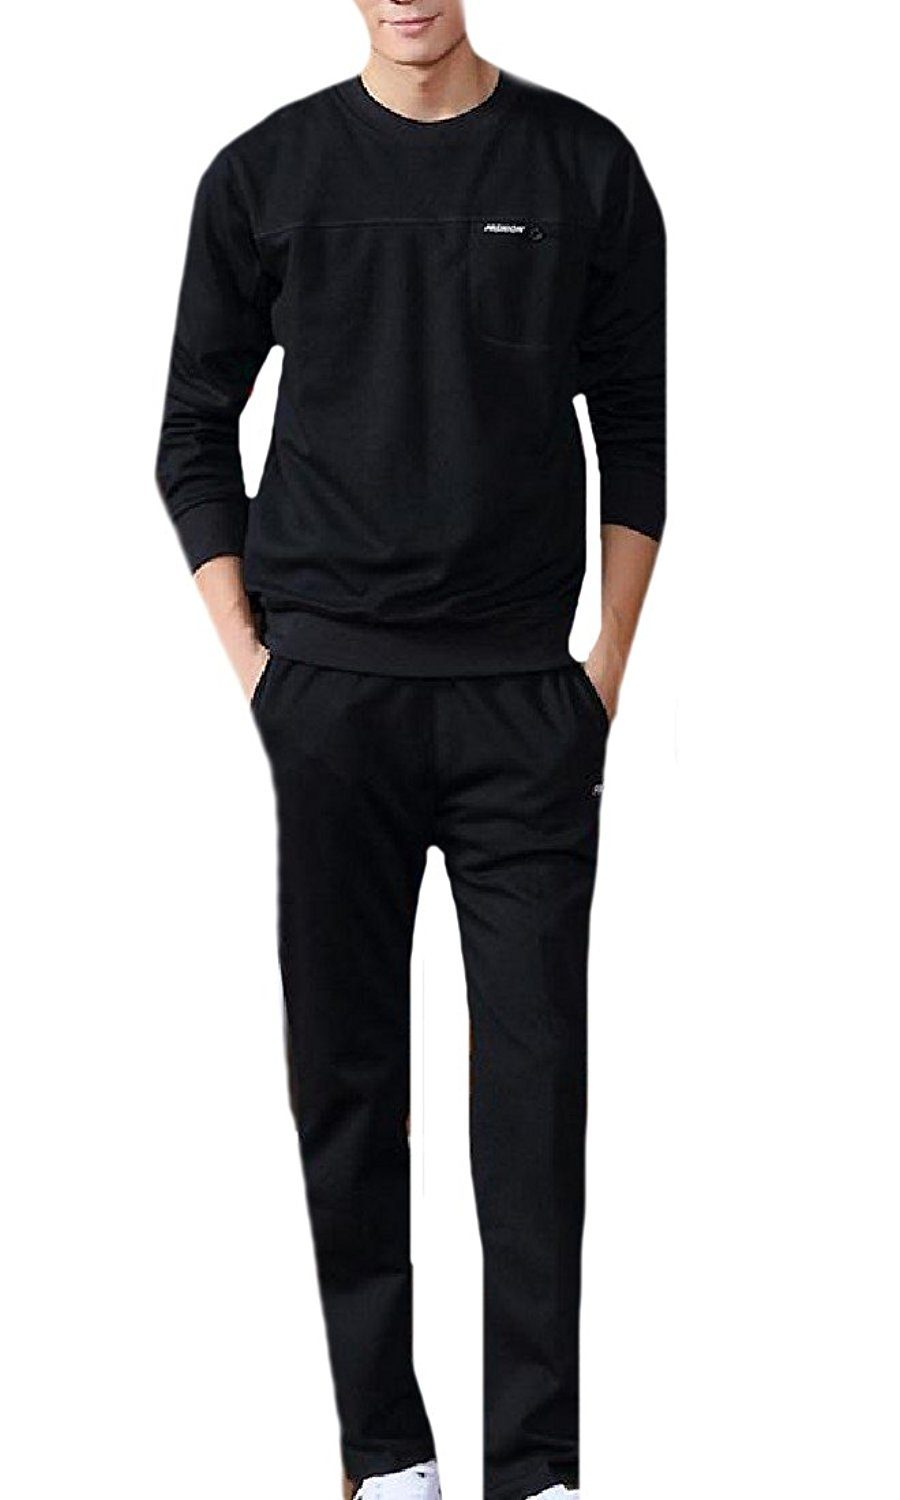 eccac567797 Get Quotations · Sexybaby Mens O-Neck Active Pullover Tracksuit Bottoms  Tracksuit Set